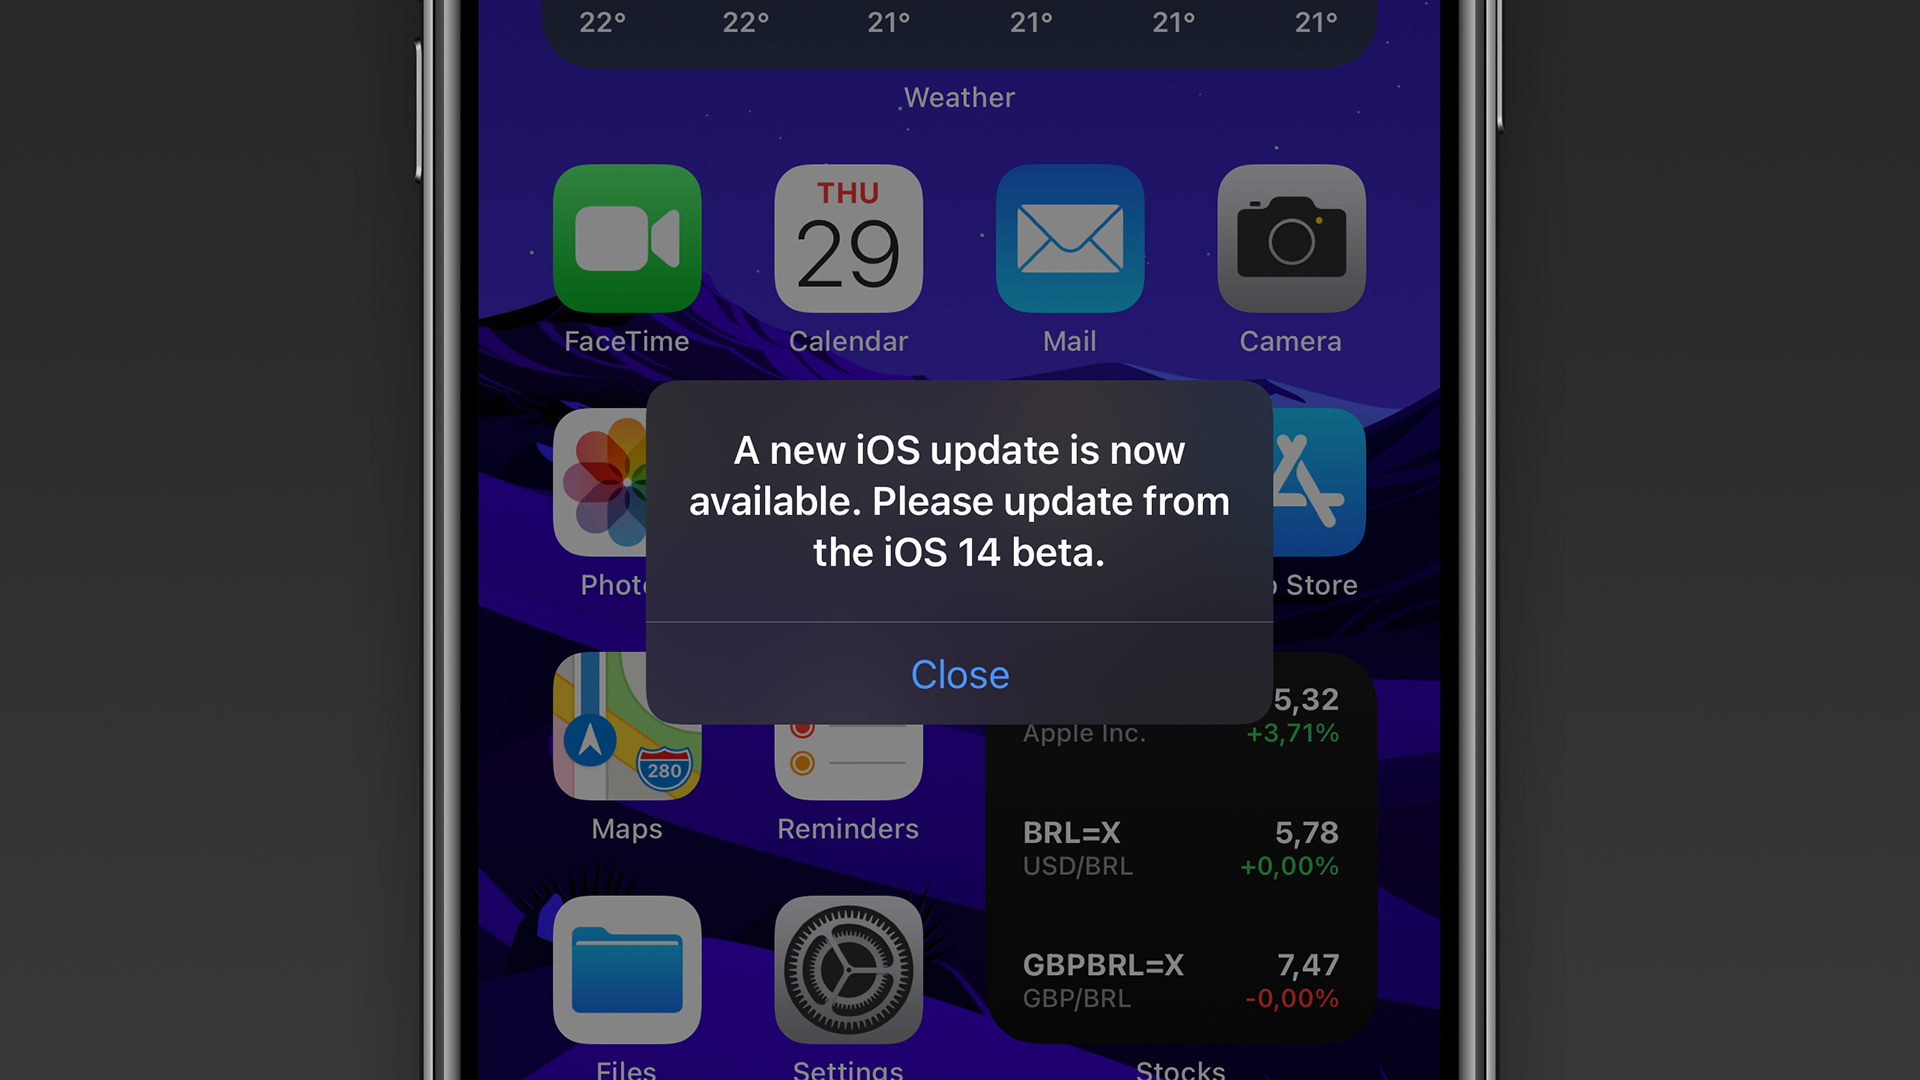 Apple releases iOS 14.2 GM with fix for 'new iOS update' alert and more - 9to5Mac